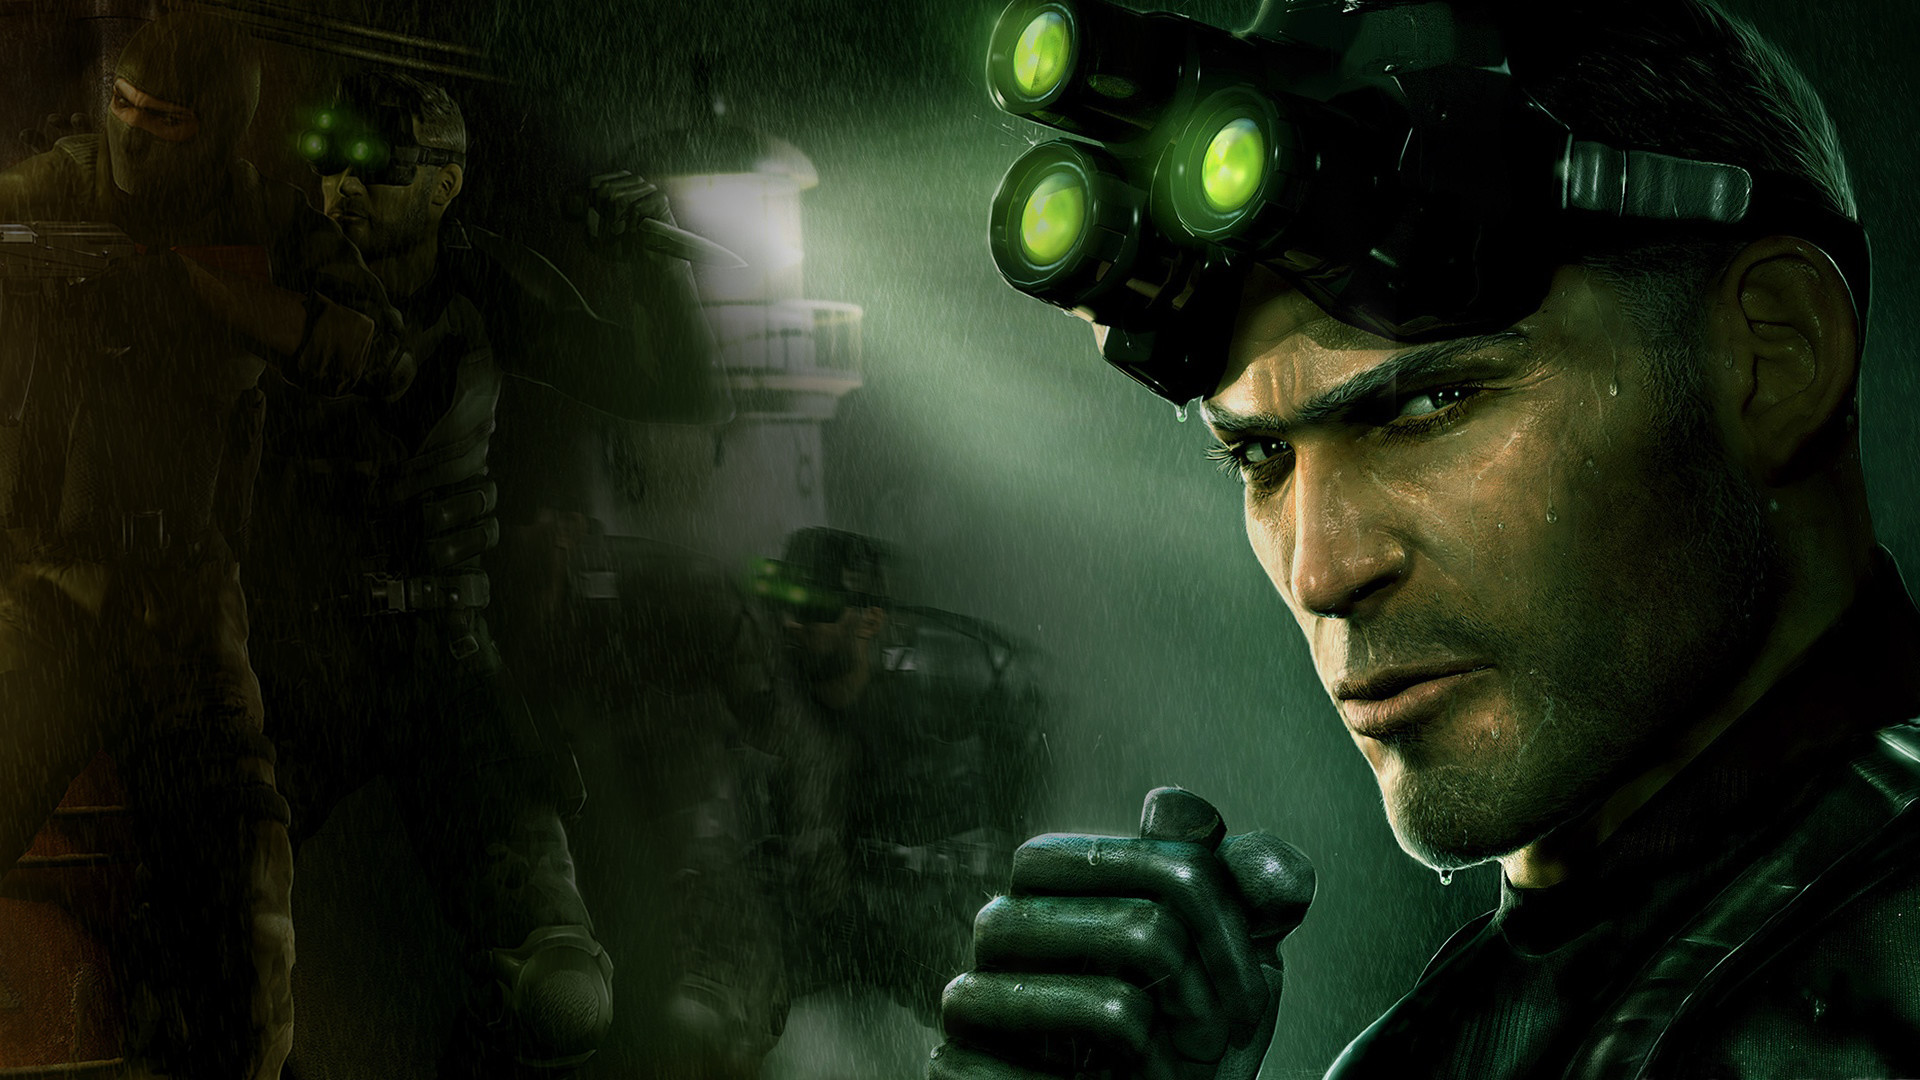 Splinter Cell Chaos Theory Wallpaper 68 Images